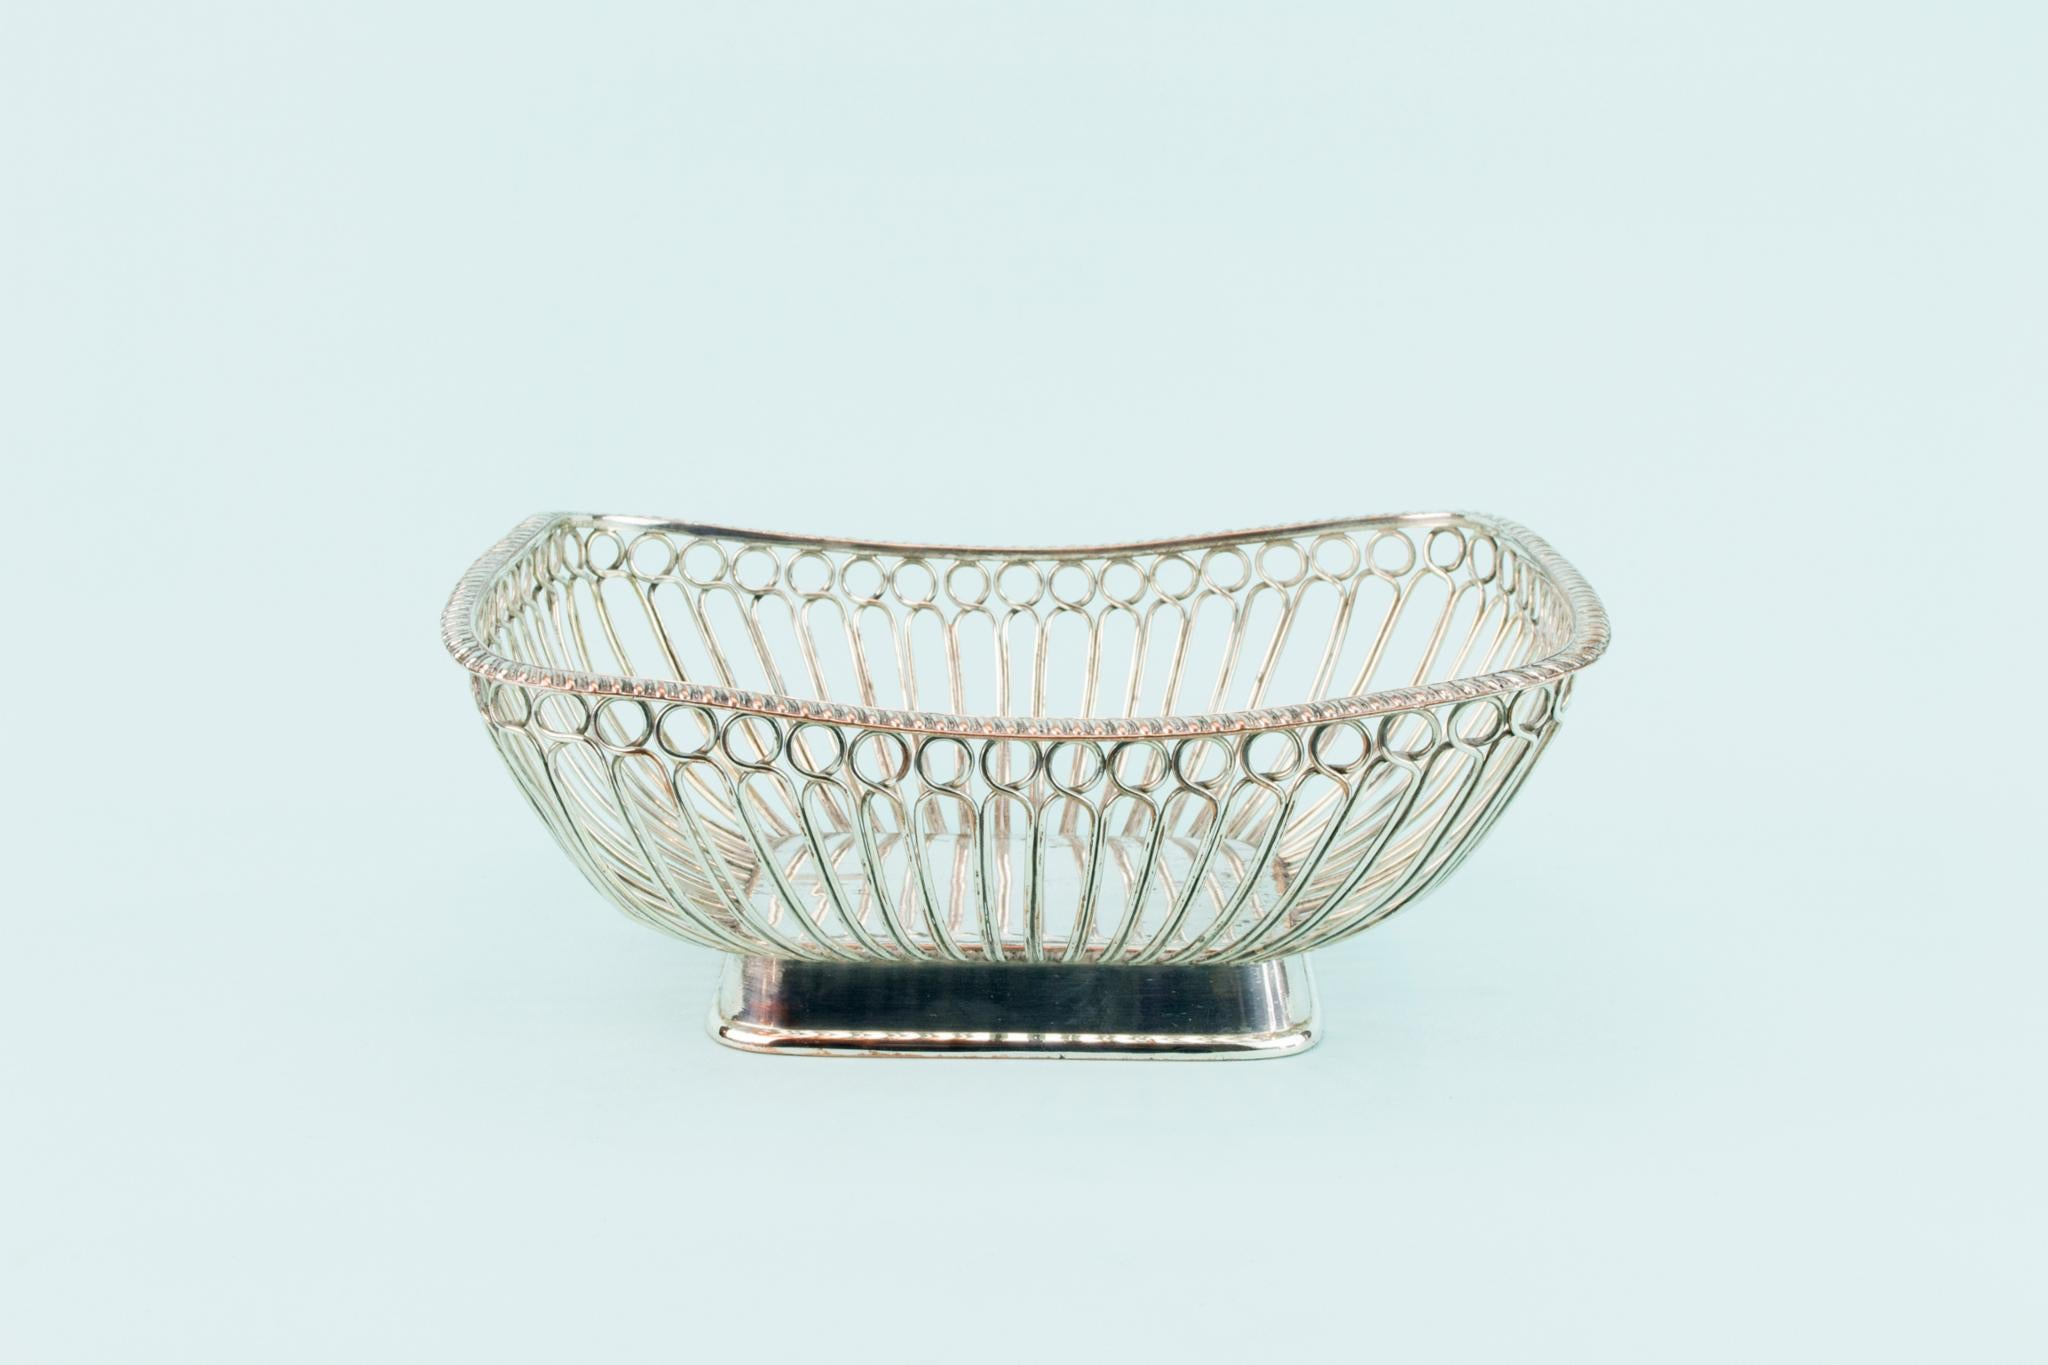 Silver Plated Bread or Fruit Serving Bowl, English Circa 1800